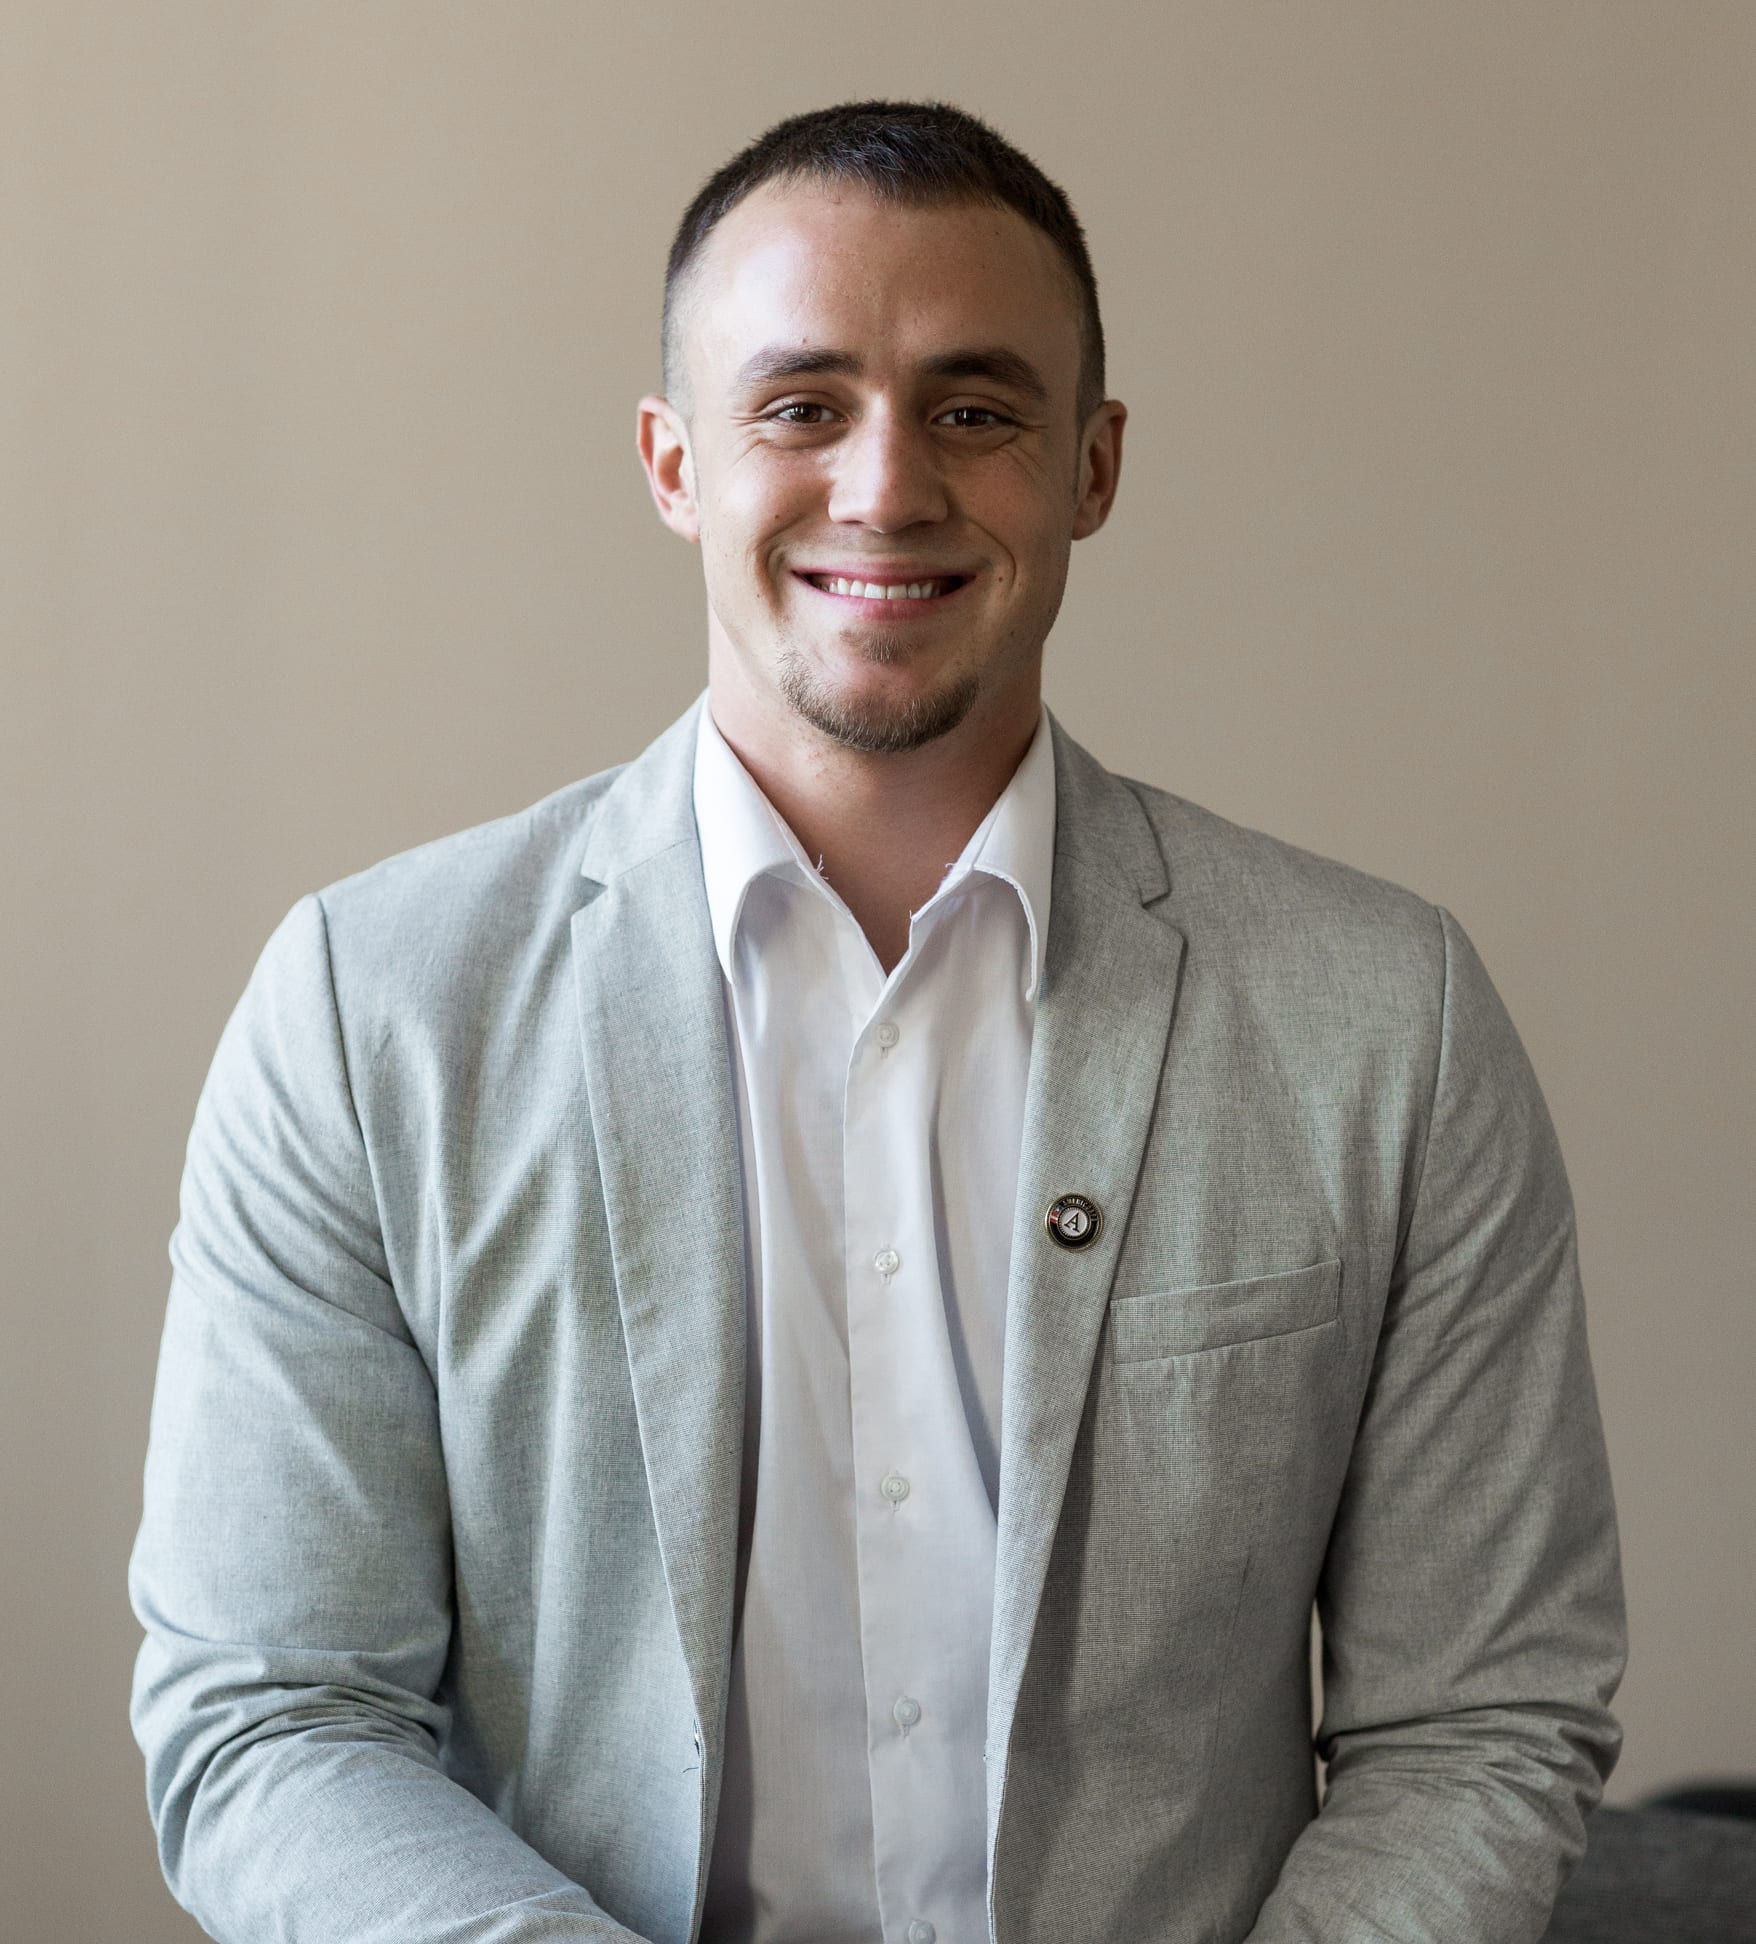 Cody Desmond, Recovery Coach at Lynn Police Department